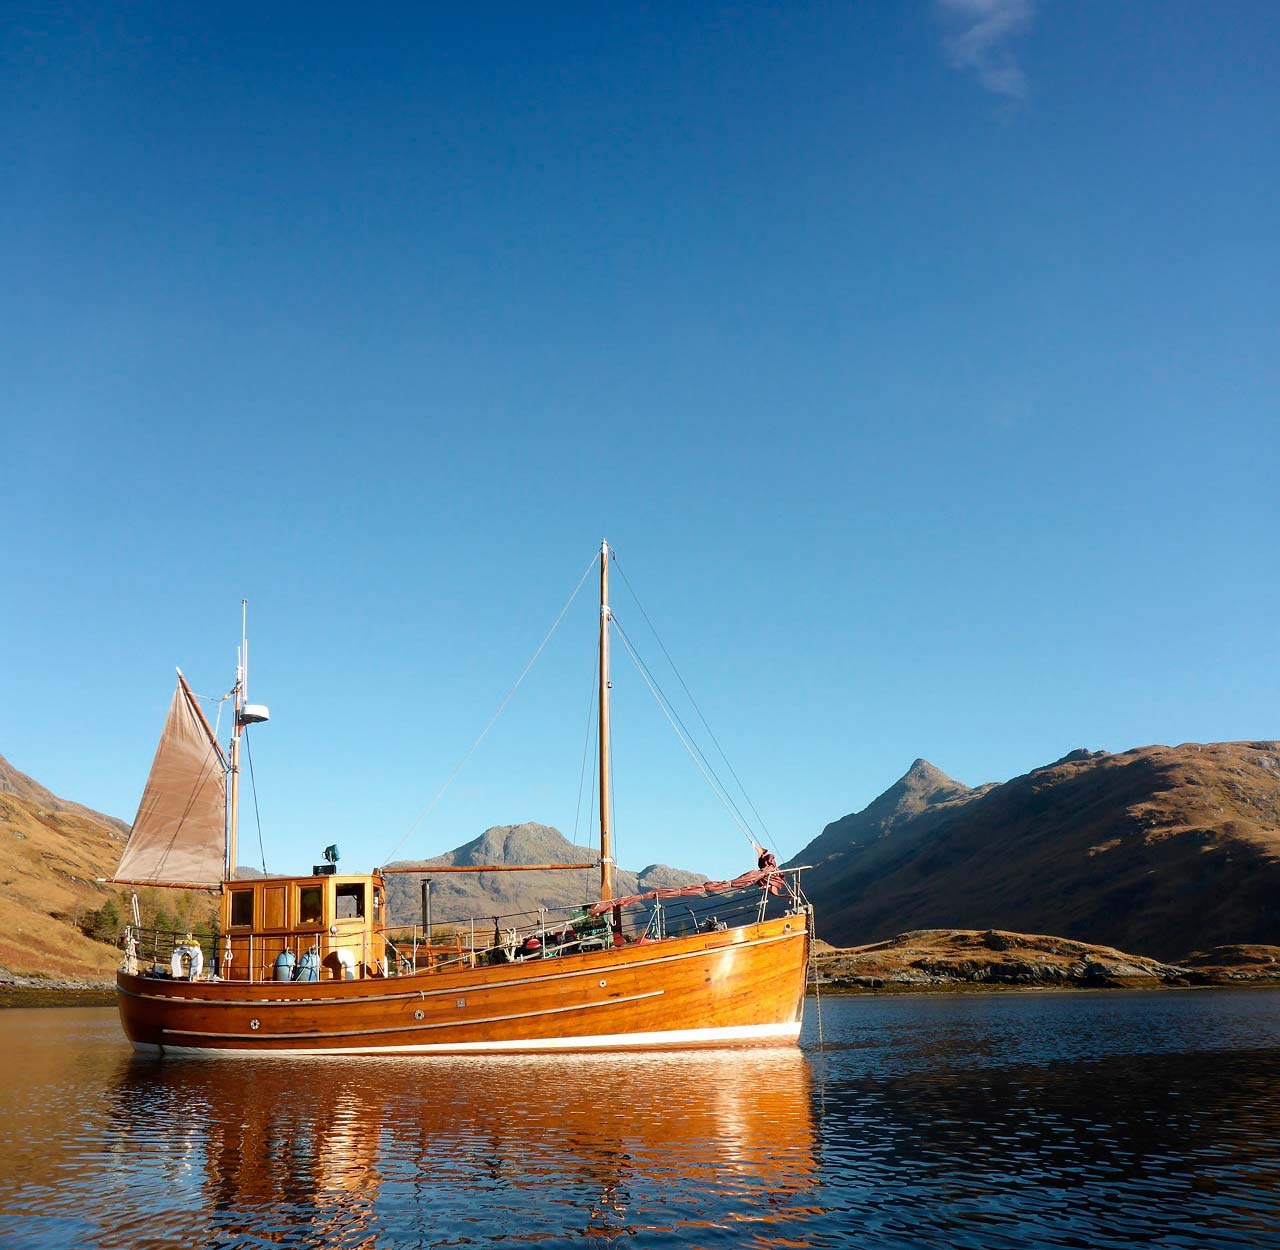 About Sgarbh - The boat has lived in Crinan and been helmed by the same family for 40 years. Sgarbh is now fully licensed for day and night trips, her cruising range (MCA Category 2) covers the entire British isles, including as far offshore as Saint Kilda.More about Sgarbh